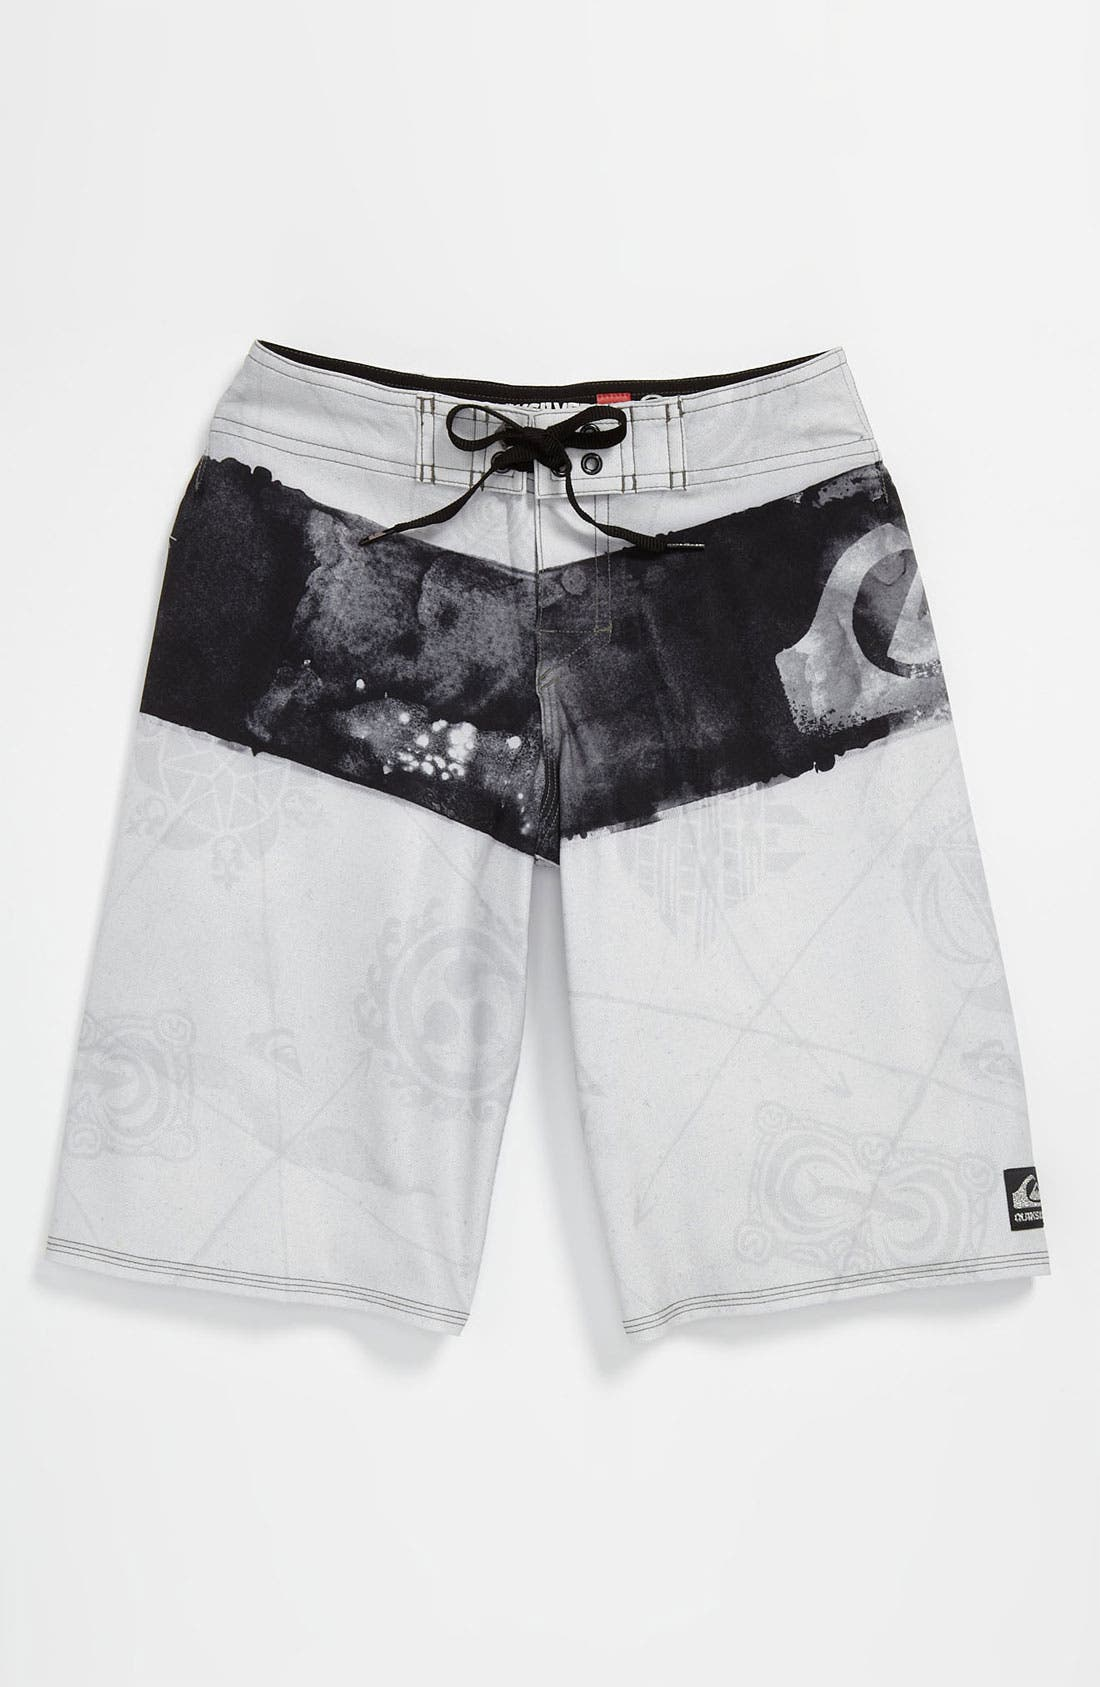 Main Image - Quiksilver 'Cypher Kelly Nomad'  Board Shorts (Big Boys)